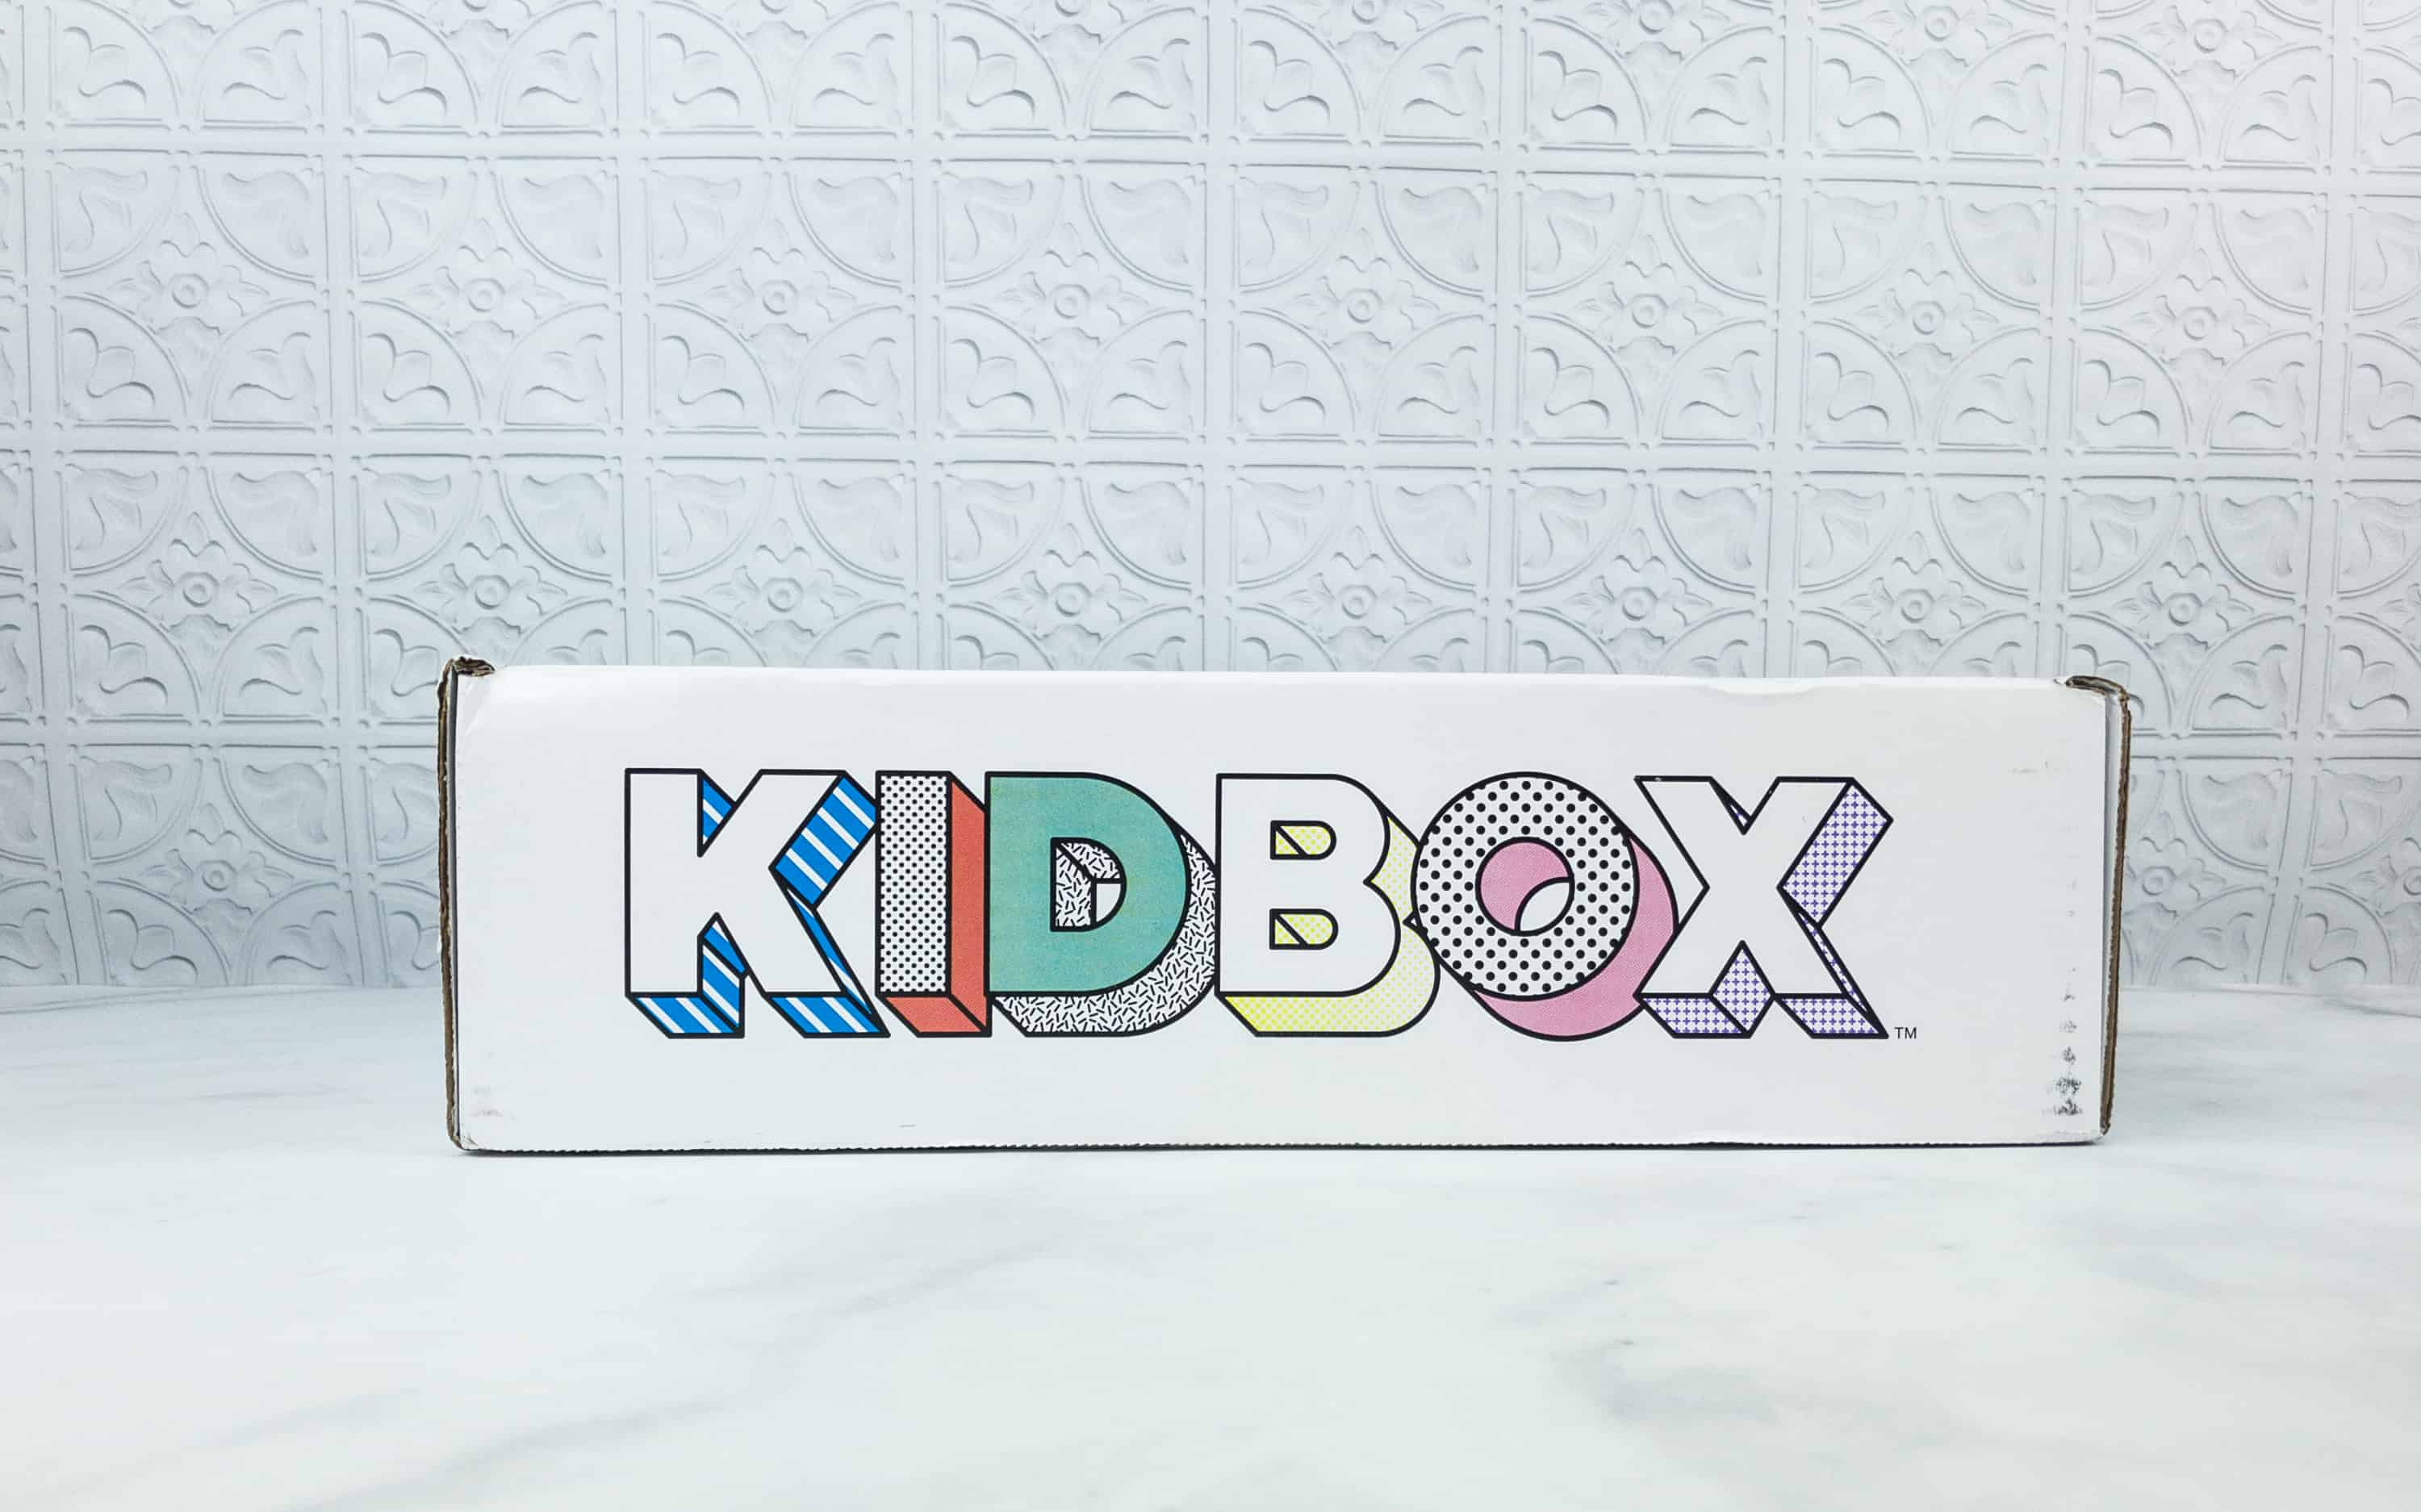 The Babies Containing Premierbaby Clos Accessories Averaging Per Item If You Keep Each Kidbox Baby Summer 2018 Subscription Box Review Coupon Girls Baby By Kidbox Is A Styling Subscription Box baby Baby Subscription Box